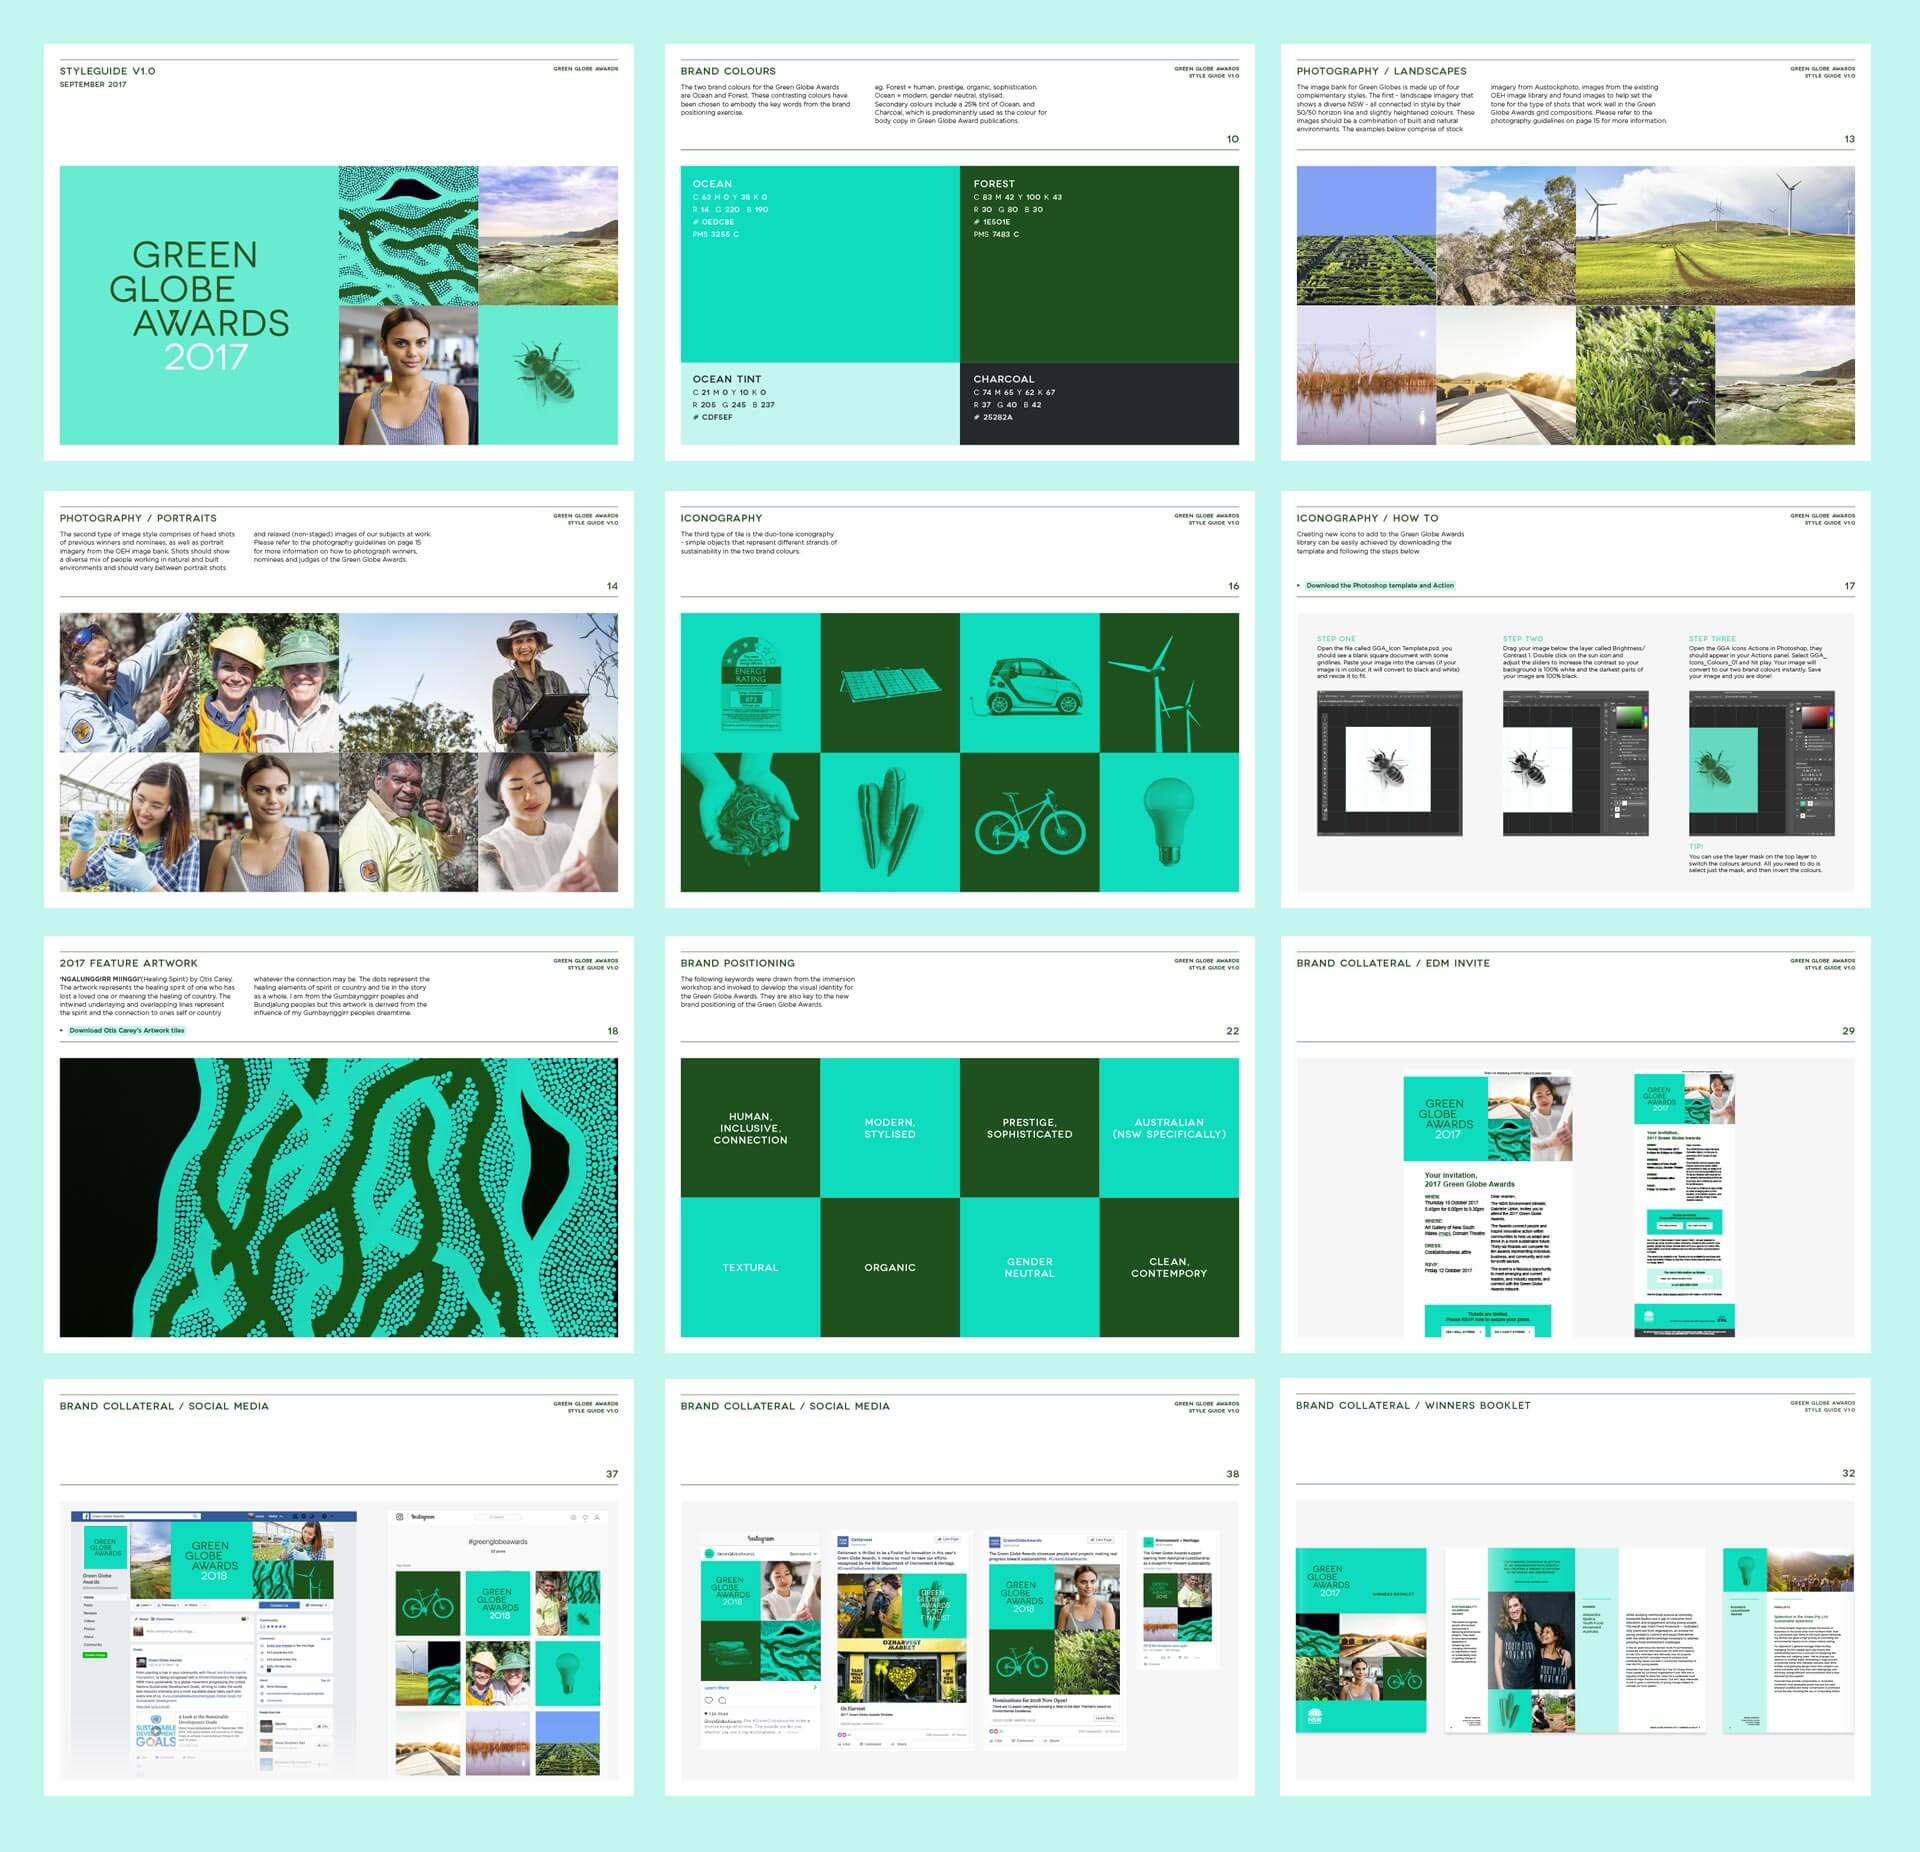 The Green Globe Awards rebrand style guide